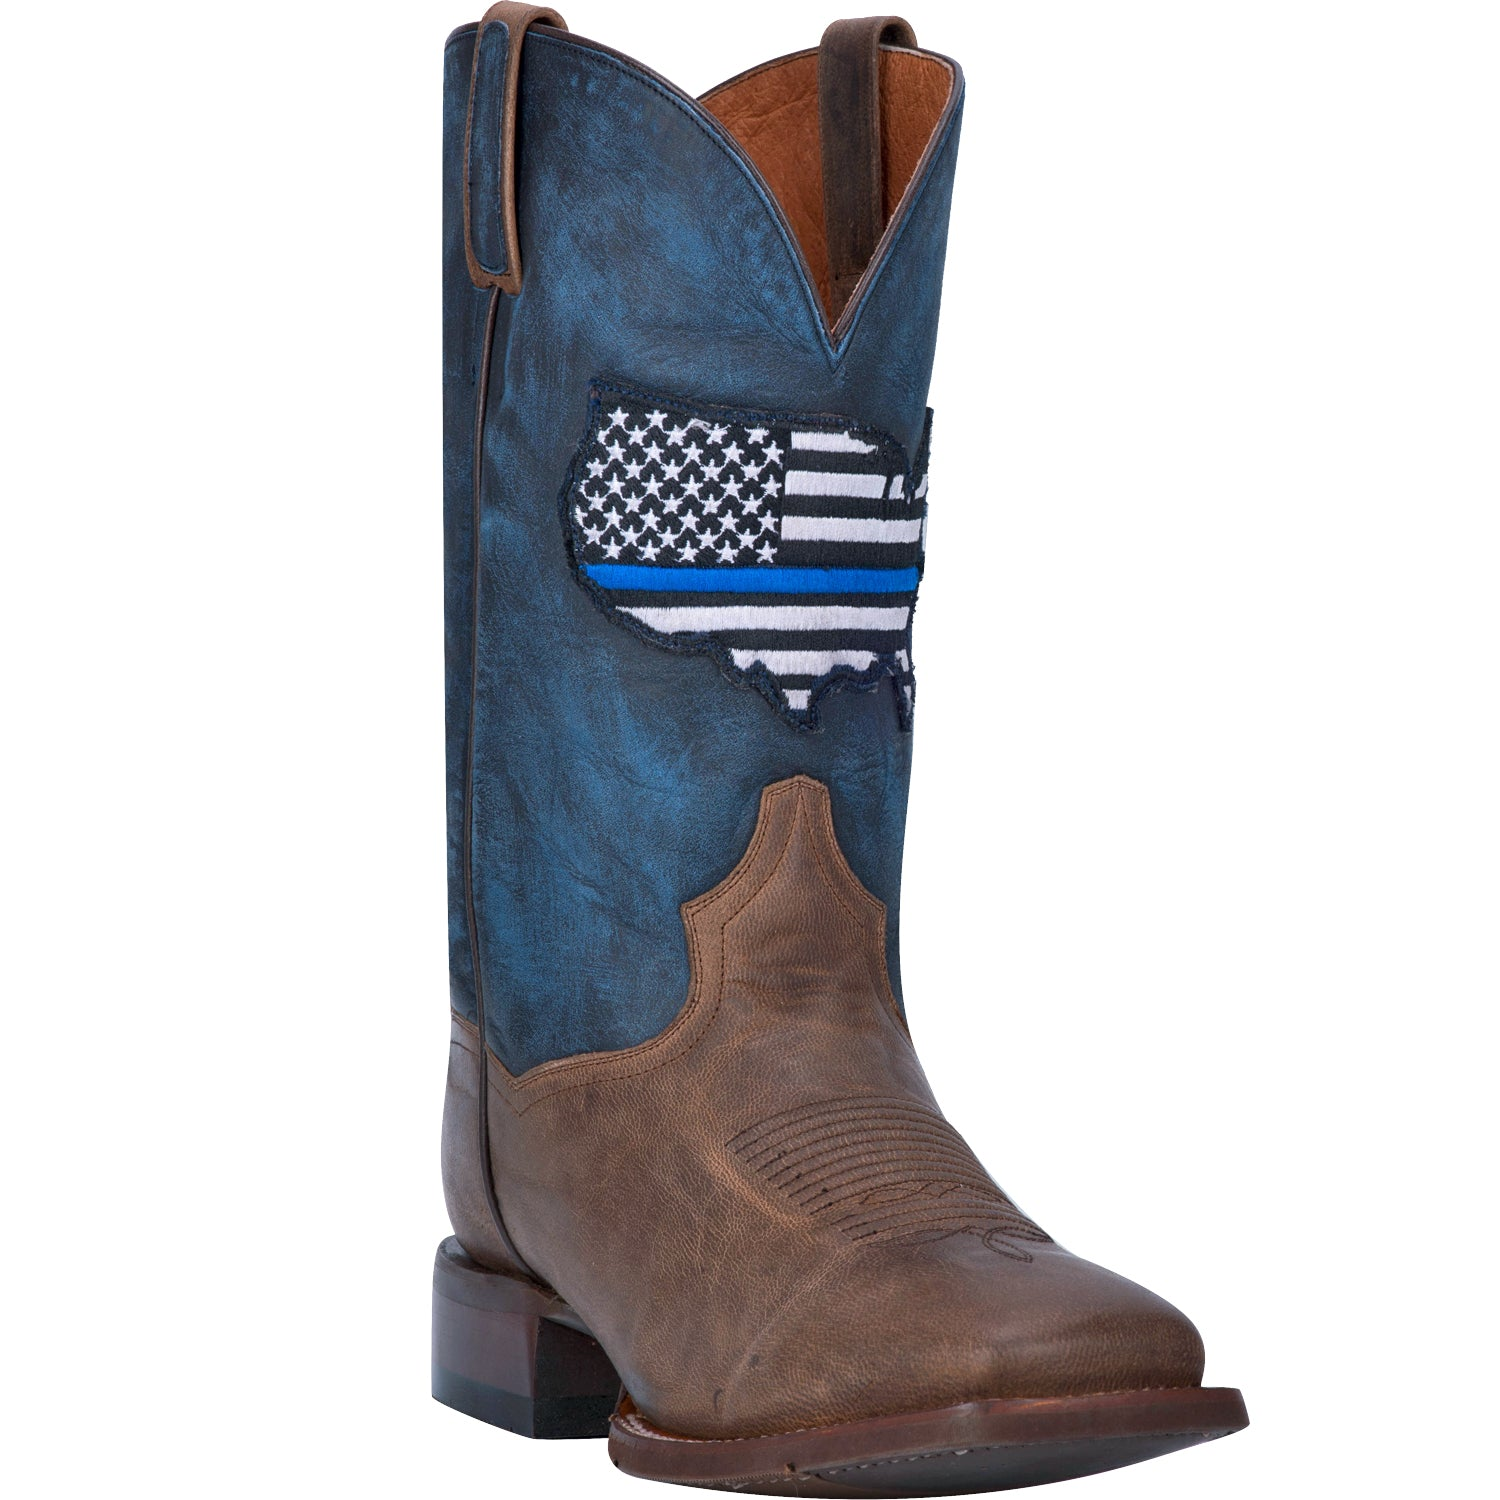 THIN BLUE LINE LEATHER BOOT 4197236080682